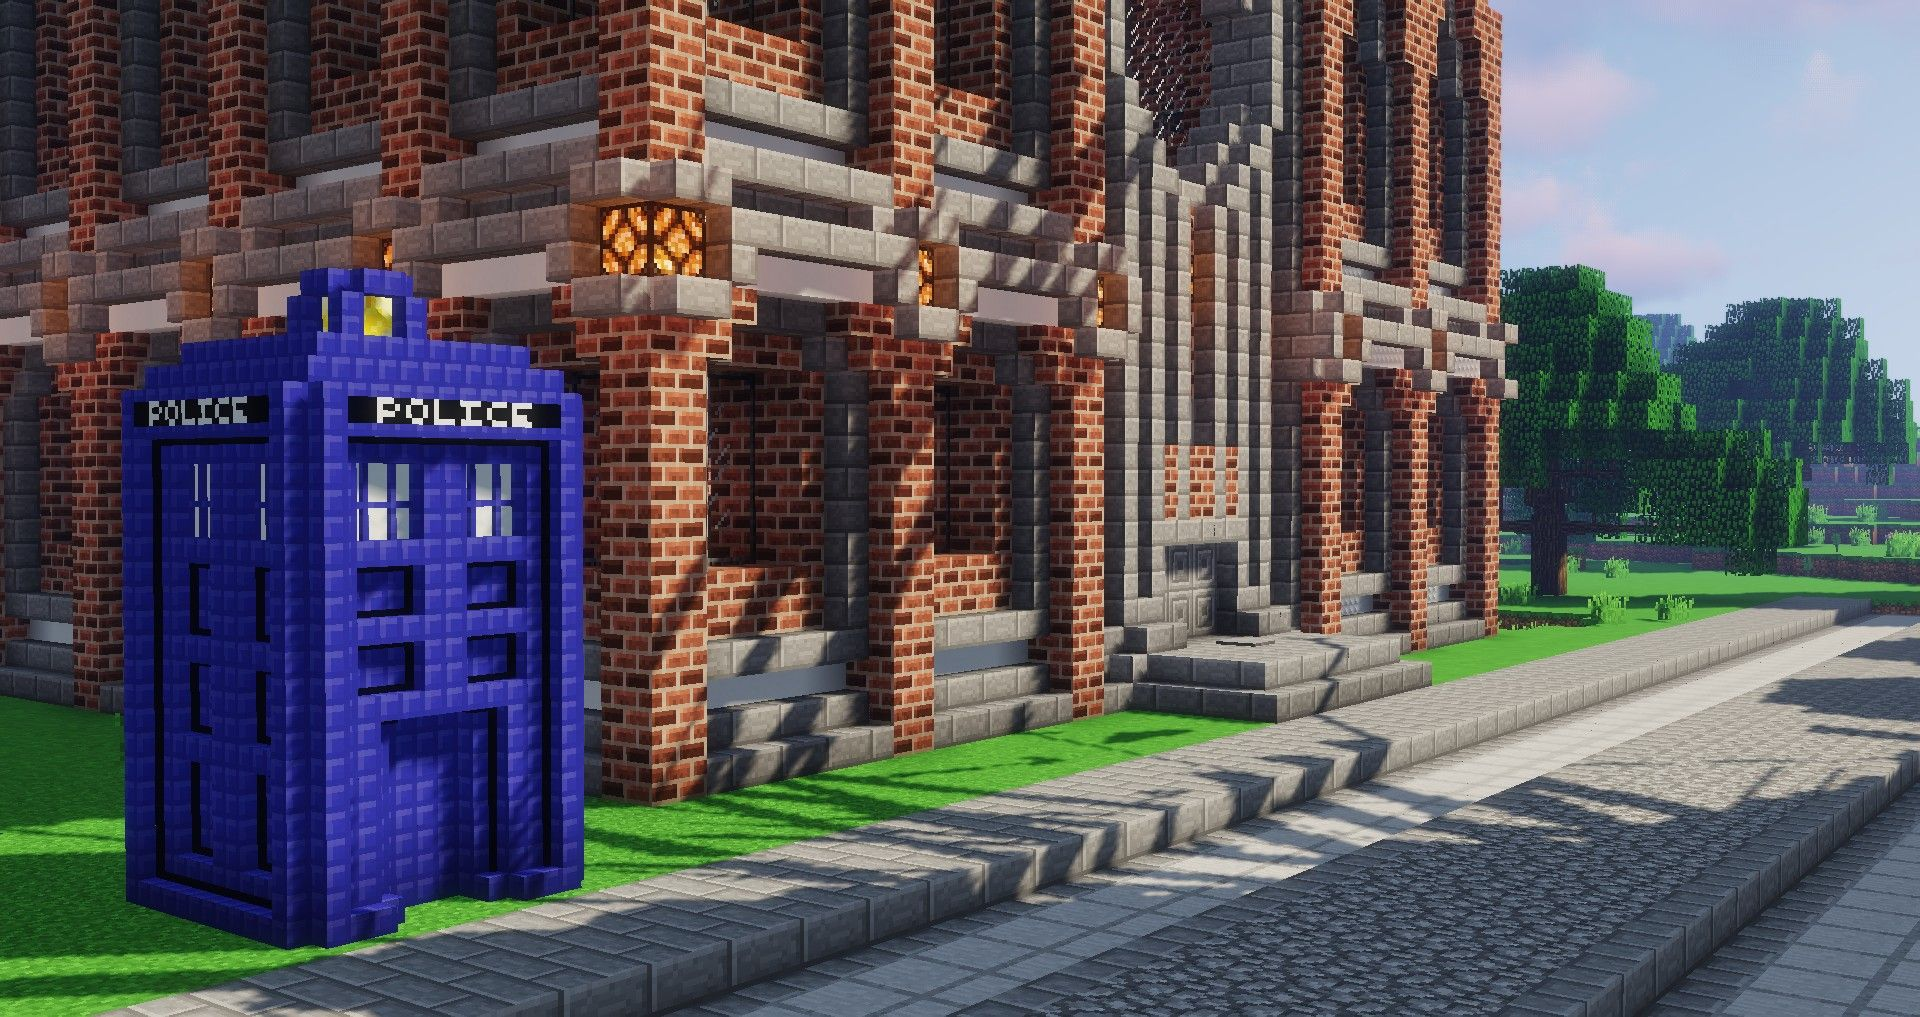 Pin by It's just Cap on Minecraft Inspiration Building